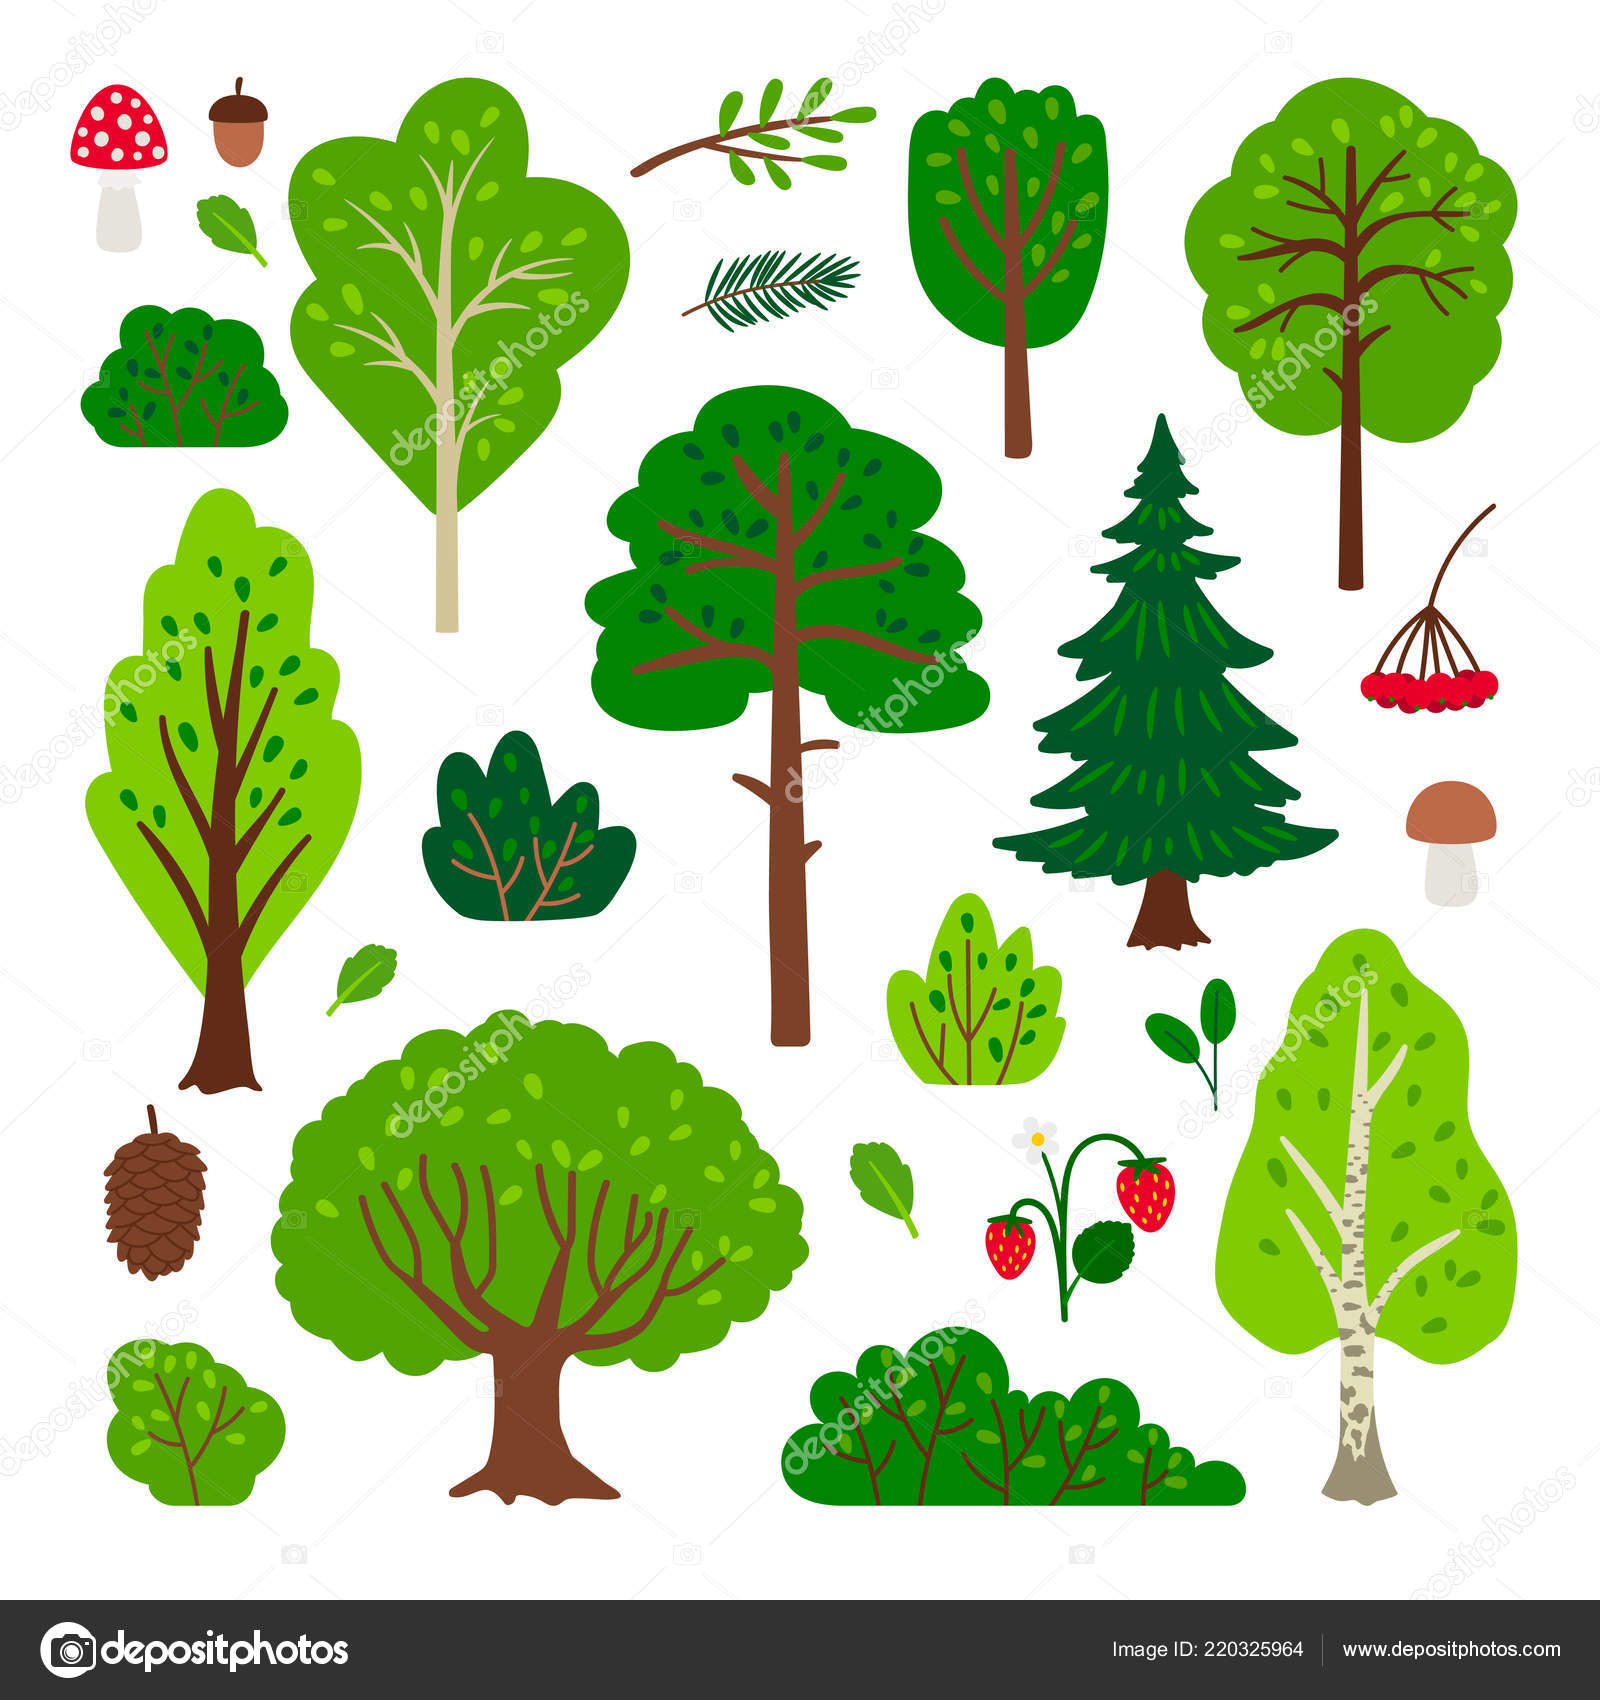 Cartoon Forest Trees Cartoon Forest Tree Set Stock Vector C Ssstocker 220325964 Illustration about cartoon forest trees, bushes, hedges and rocks. https depositphotos com 220325964 stock illustration cartoon forest tree set html